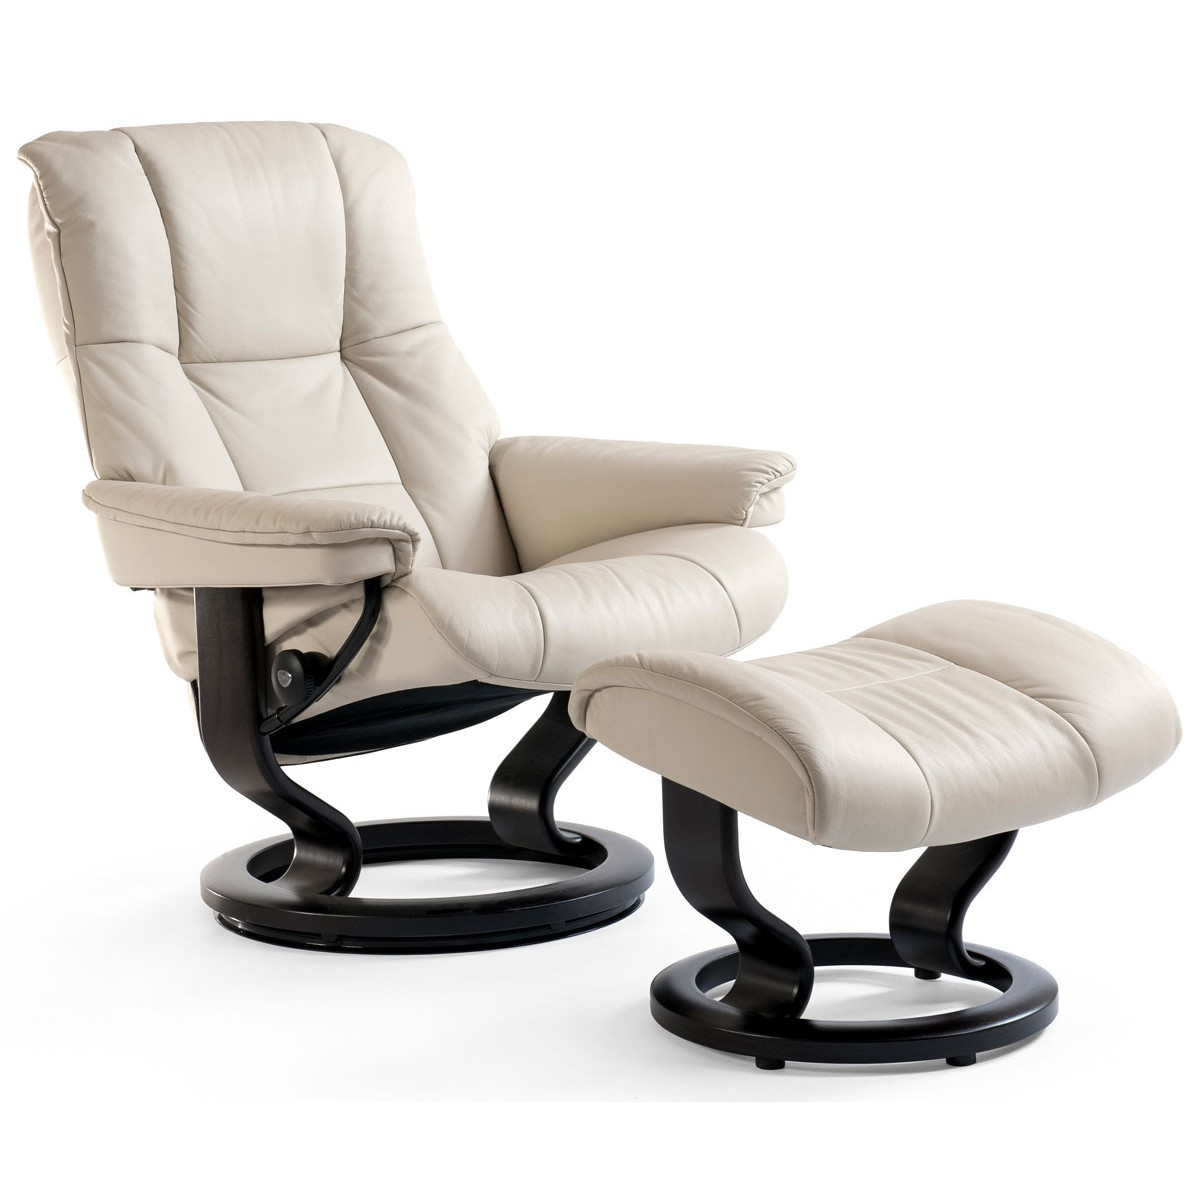 Stresless Stressless Mayfair Large Recliner & Ottoman From $2,695.00